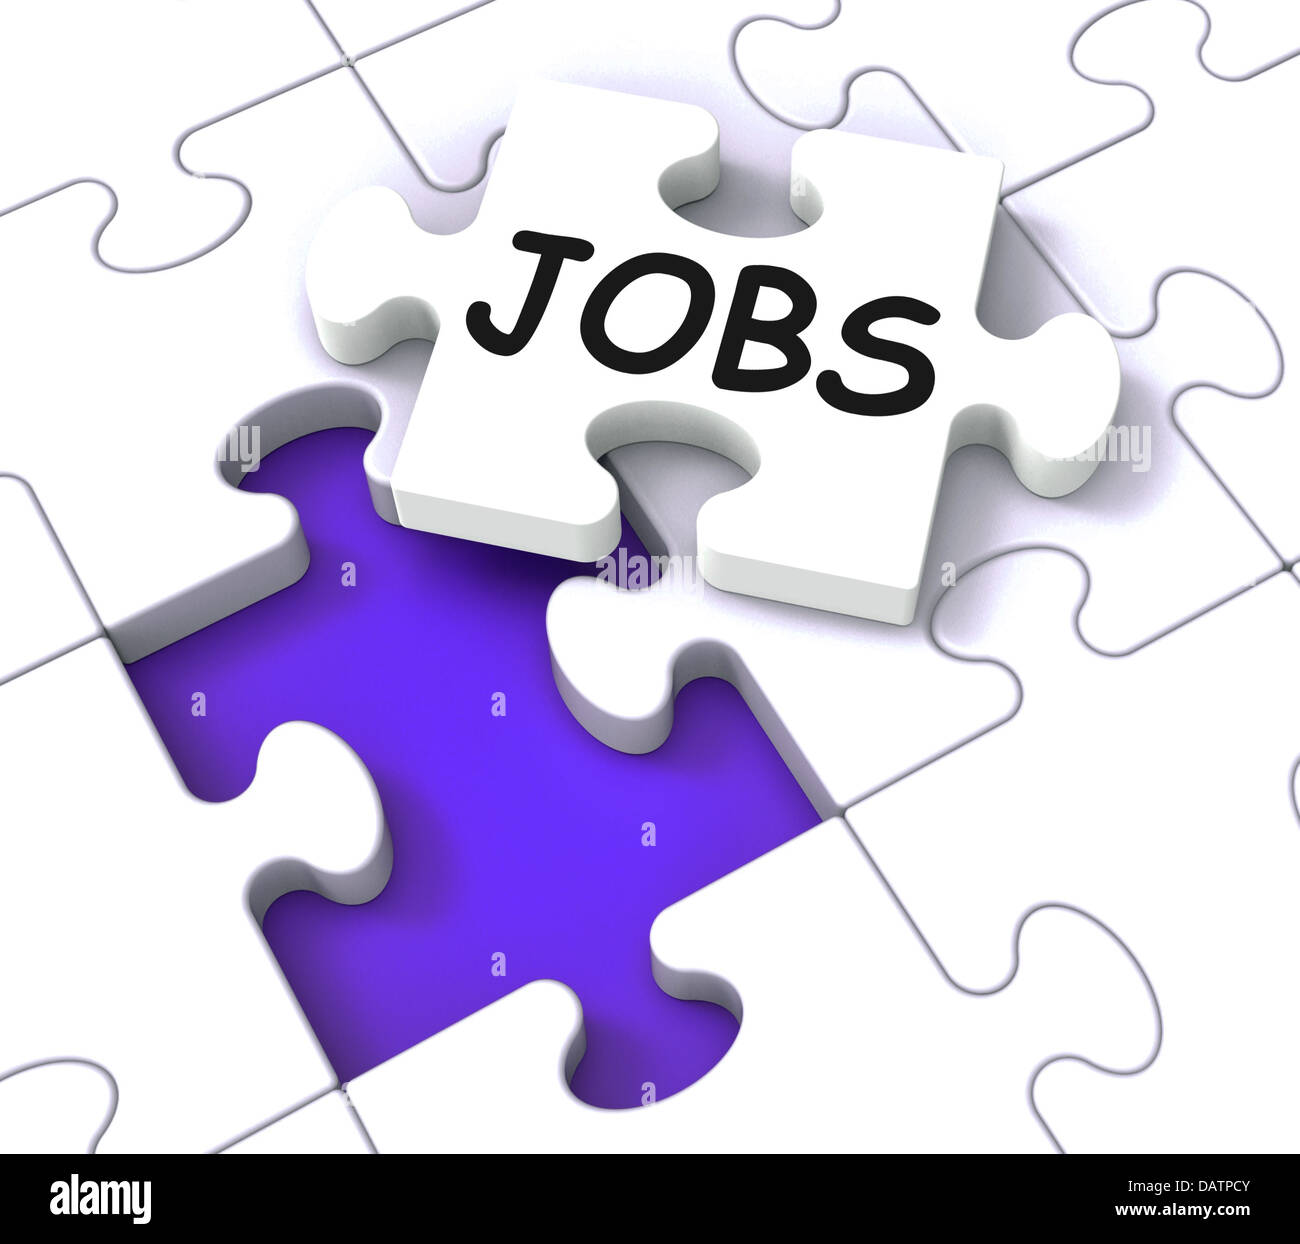 Jobs Puzzle Shows Vocational Guidance Stock Photo, Royalty Free ...